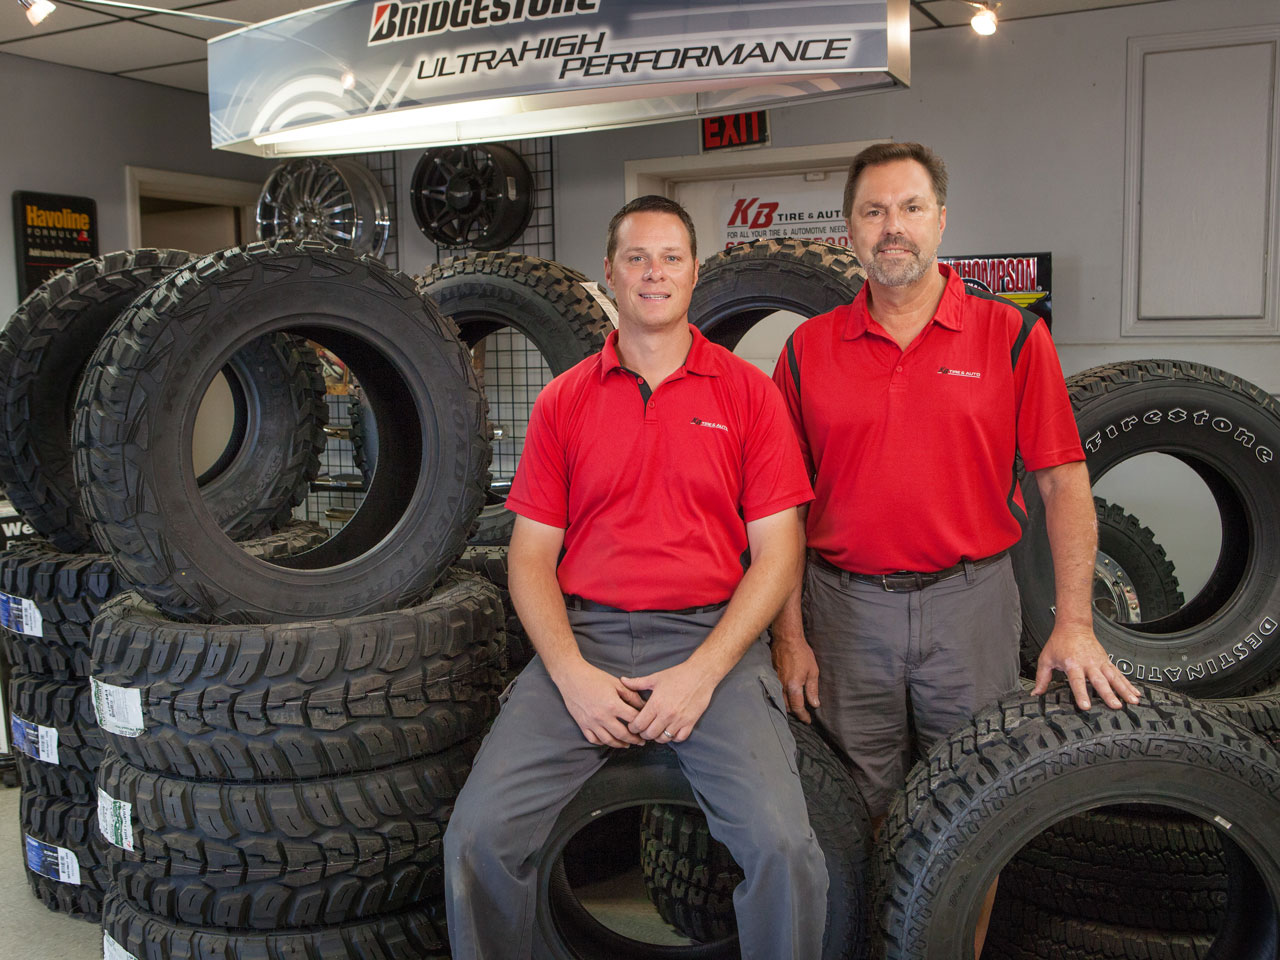 Two men posing in front of tire display at KB Tire & Auto